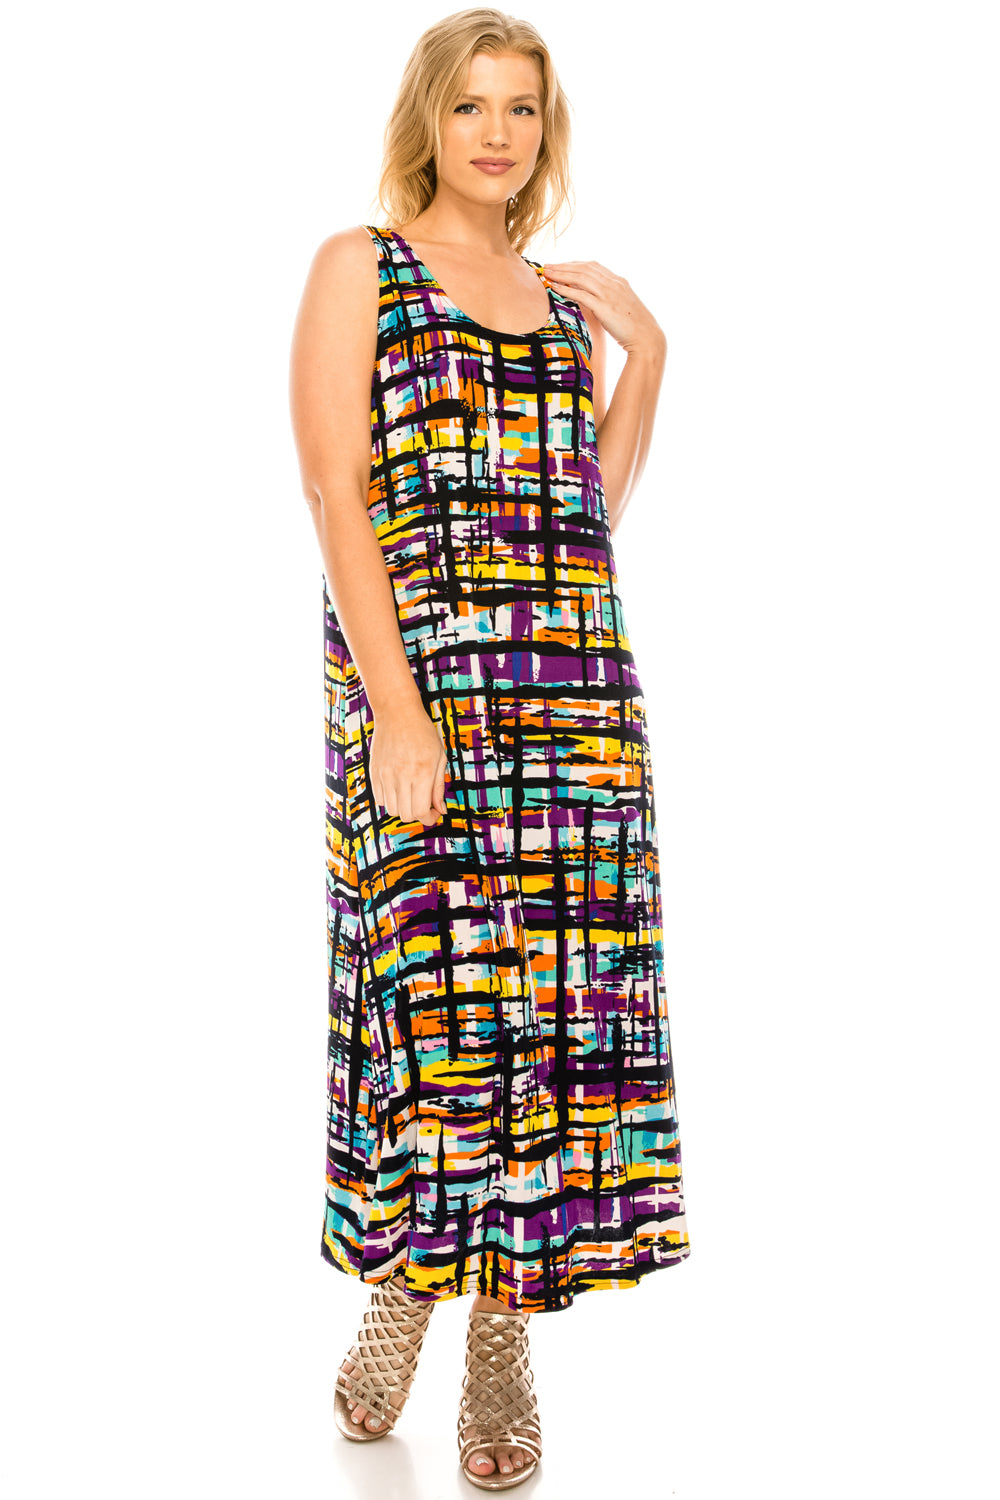 Jostar Women's Stretchy Tank Long Dress Sleeveless Plus Print, 700BN-TXP-W198